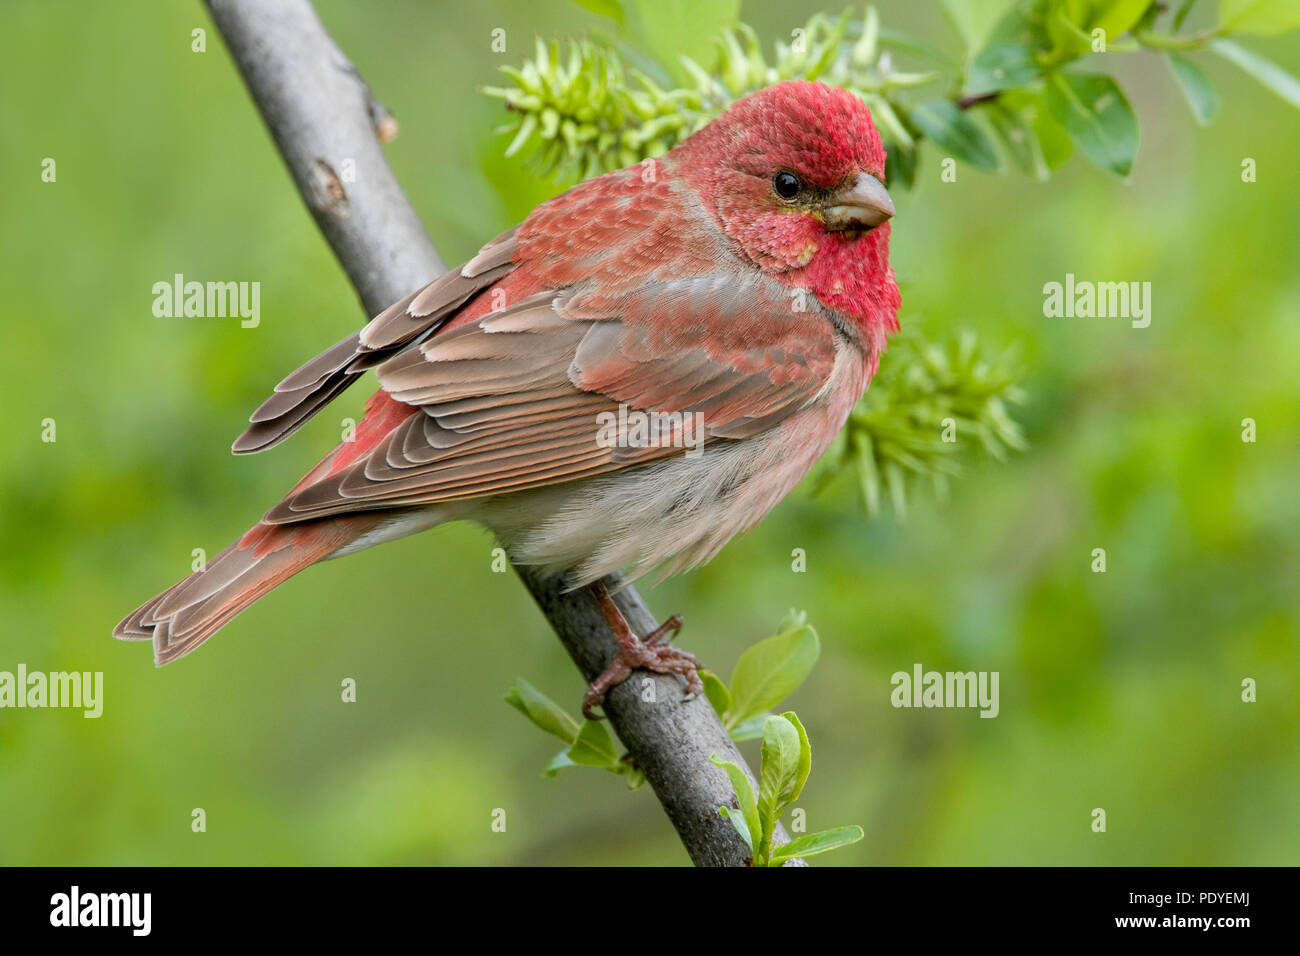 A Scarlet Rosefinch on a twig - Stock Image